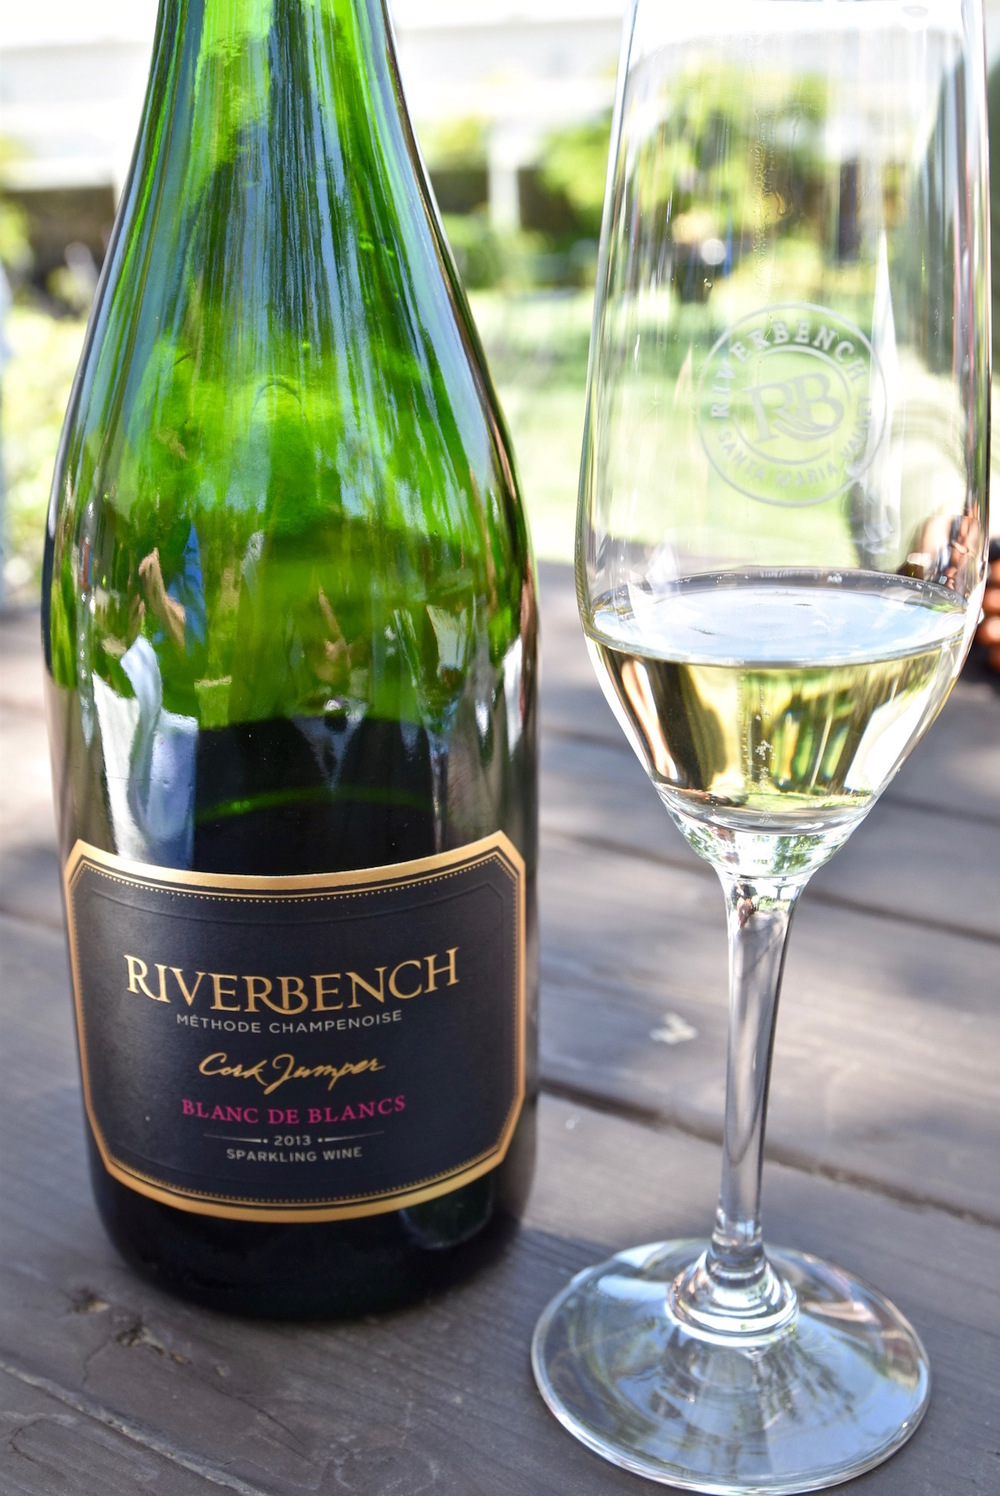 Riverbench blanc de blanc.jpg